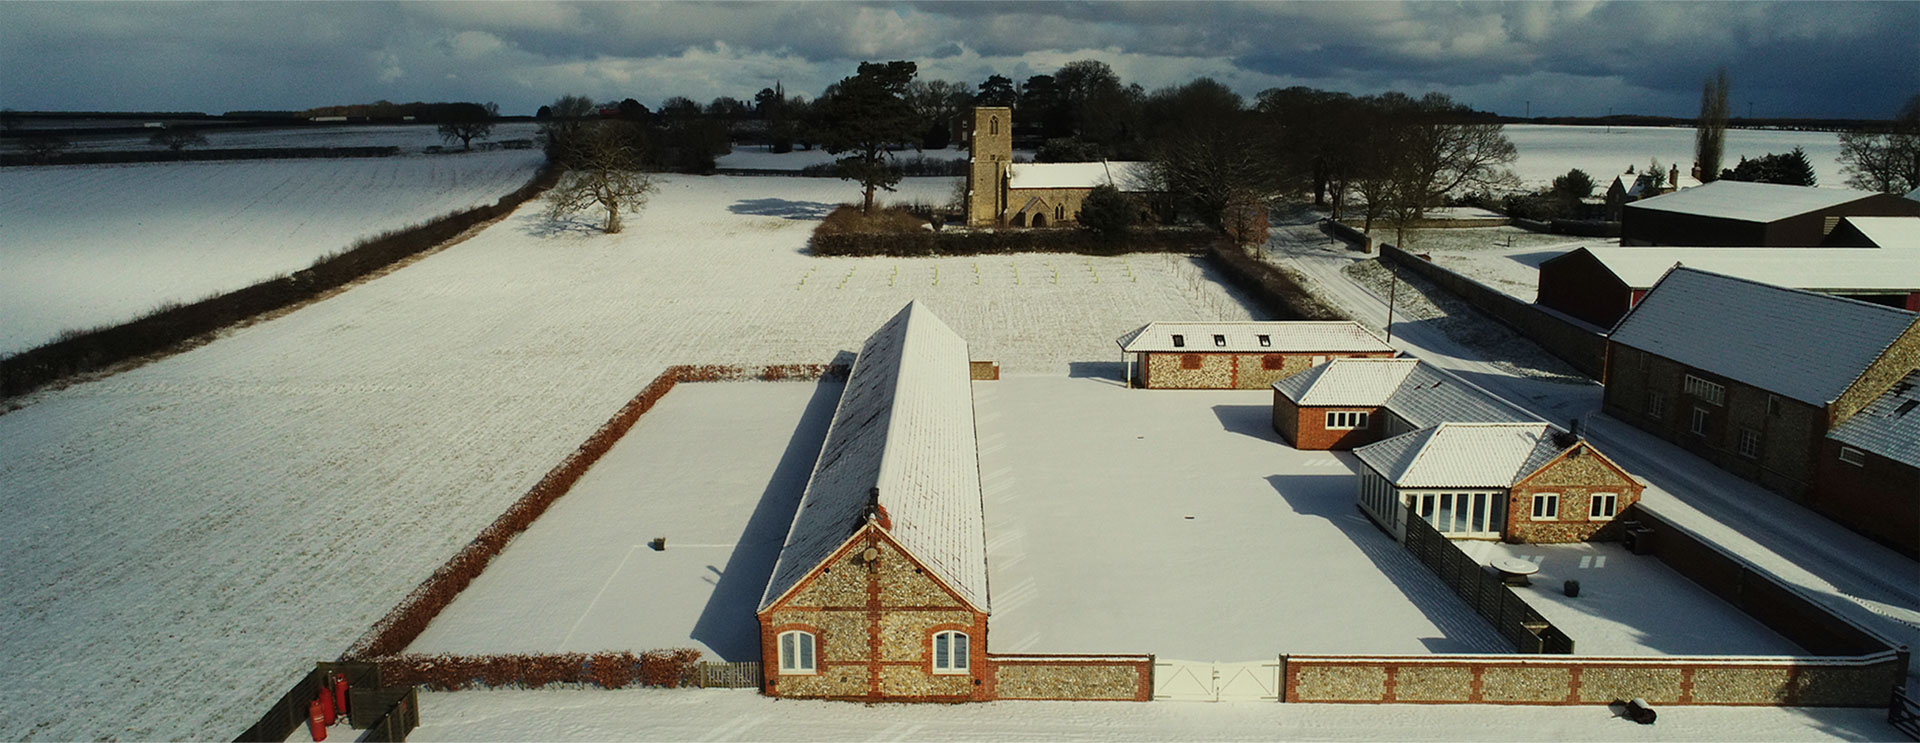 Brazenhall Barns Areal view winter - slider